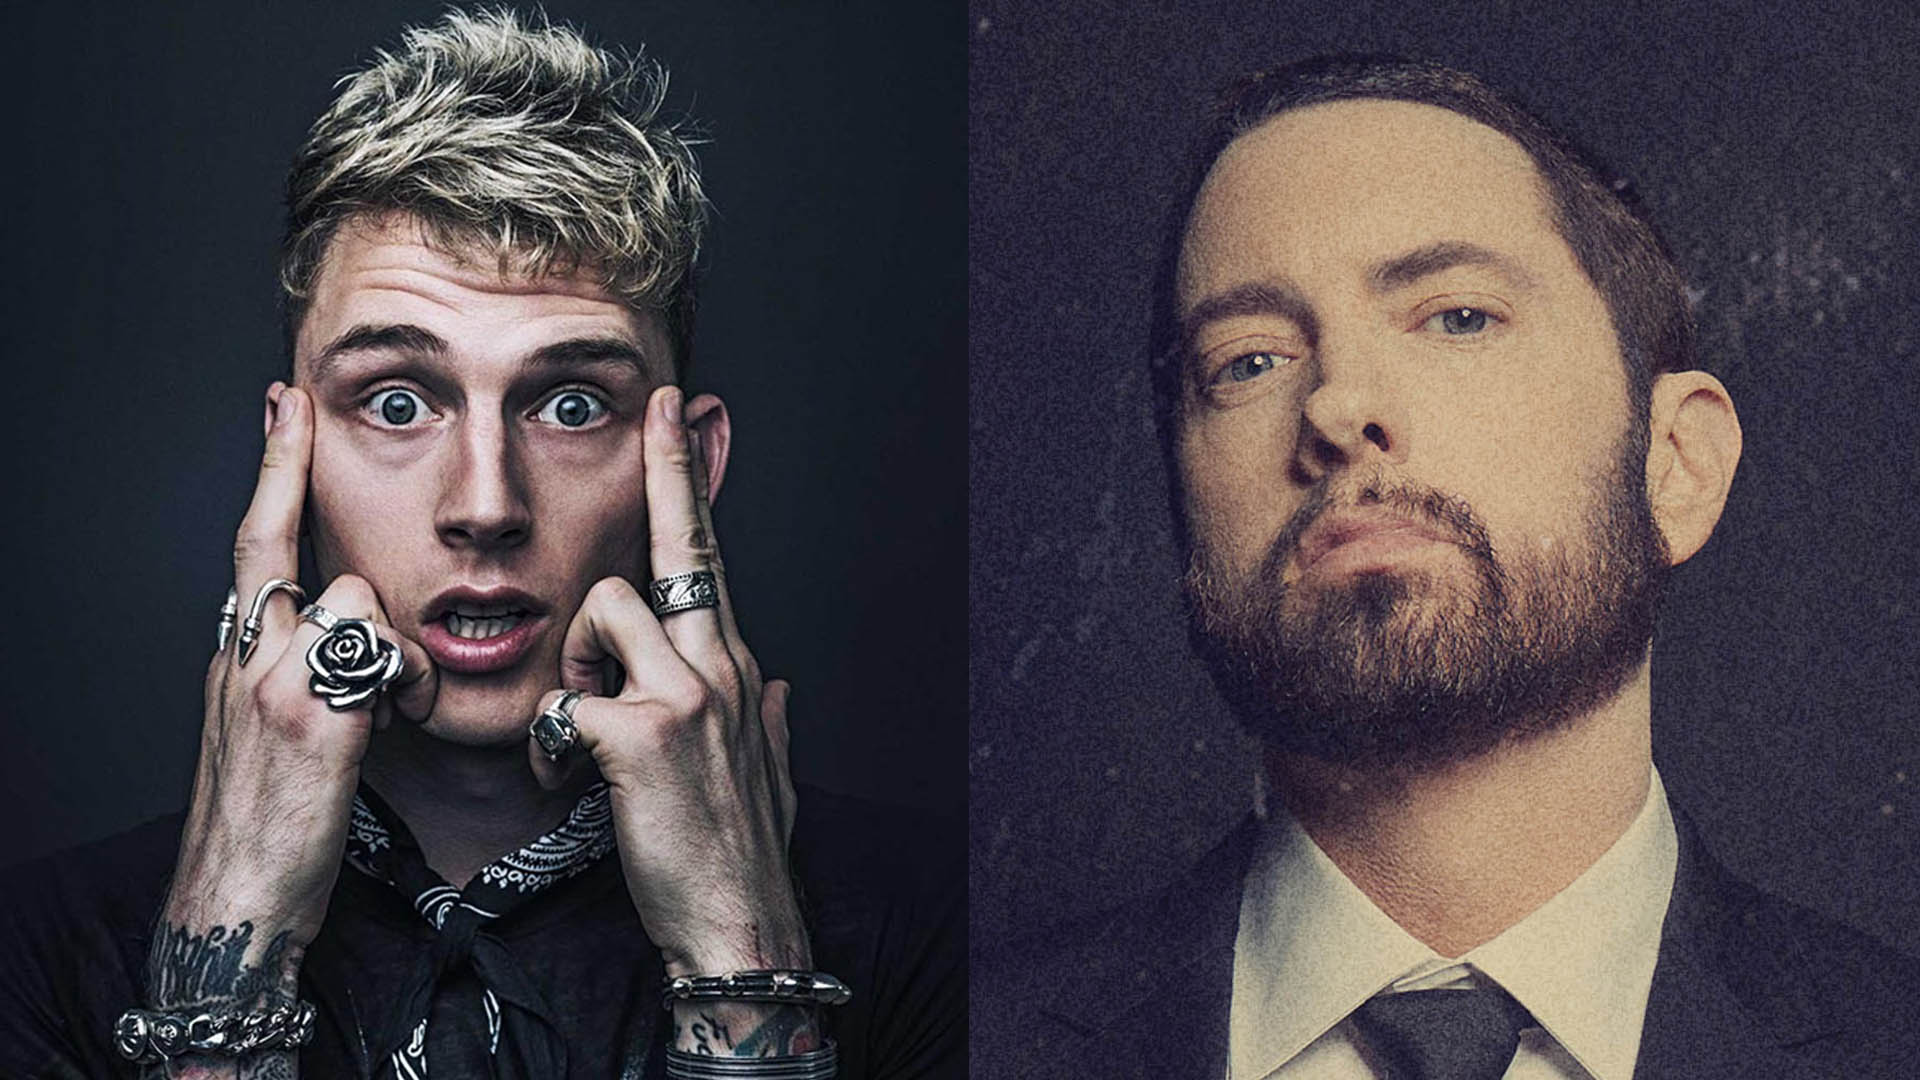 Machine Gun Kelly Blames Beef With Eminem For His Downfall